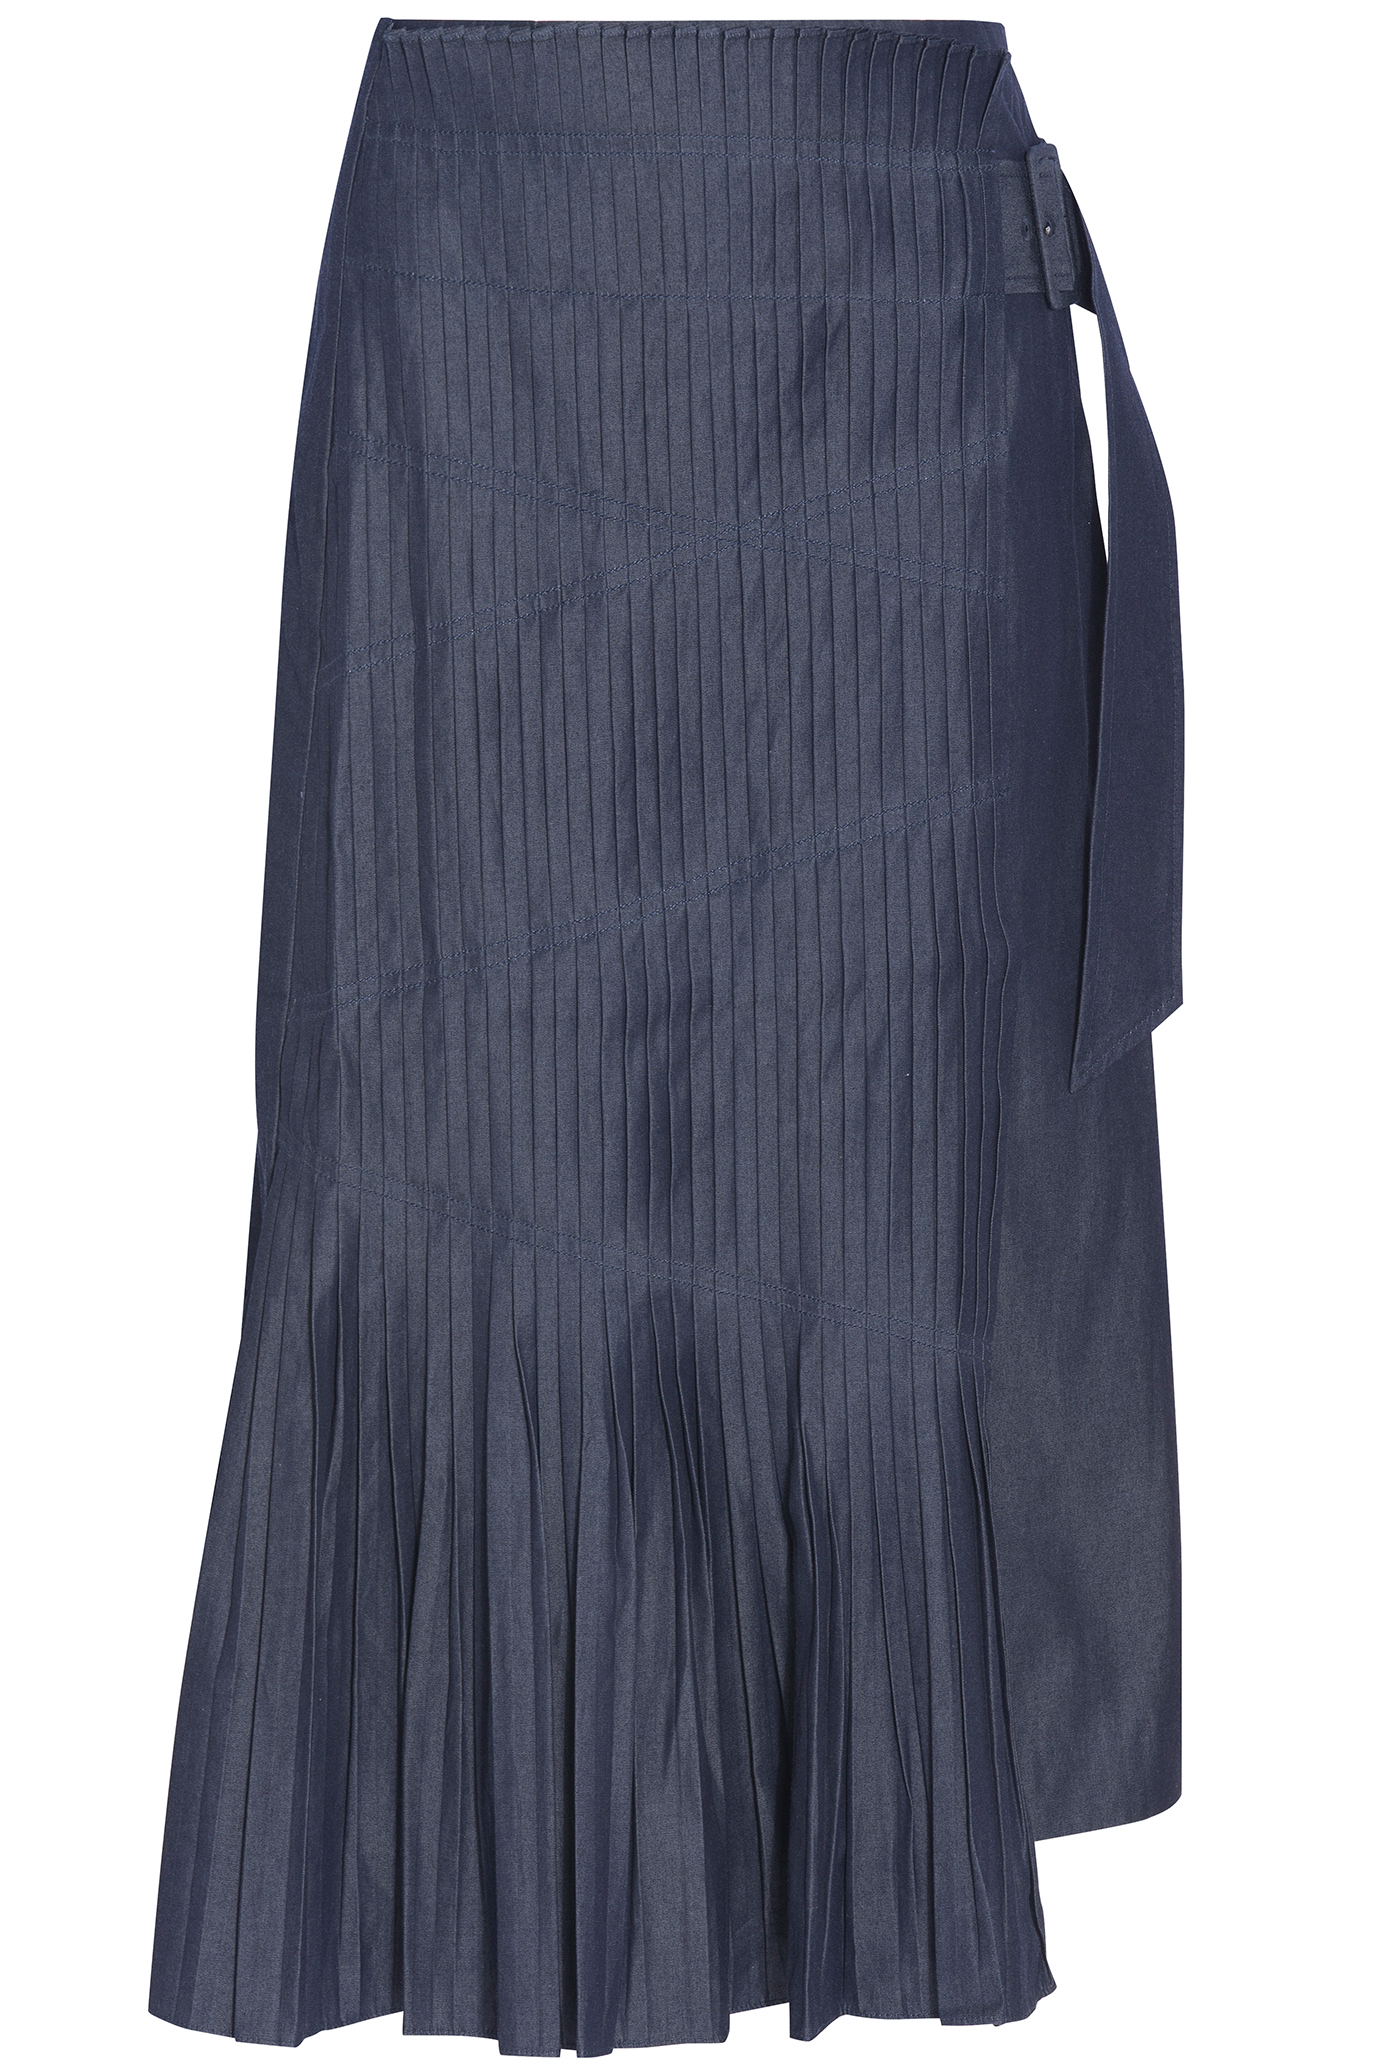 tibi pleated denim skirt lyst